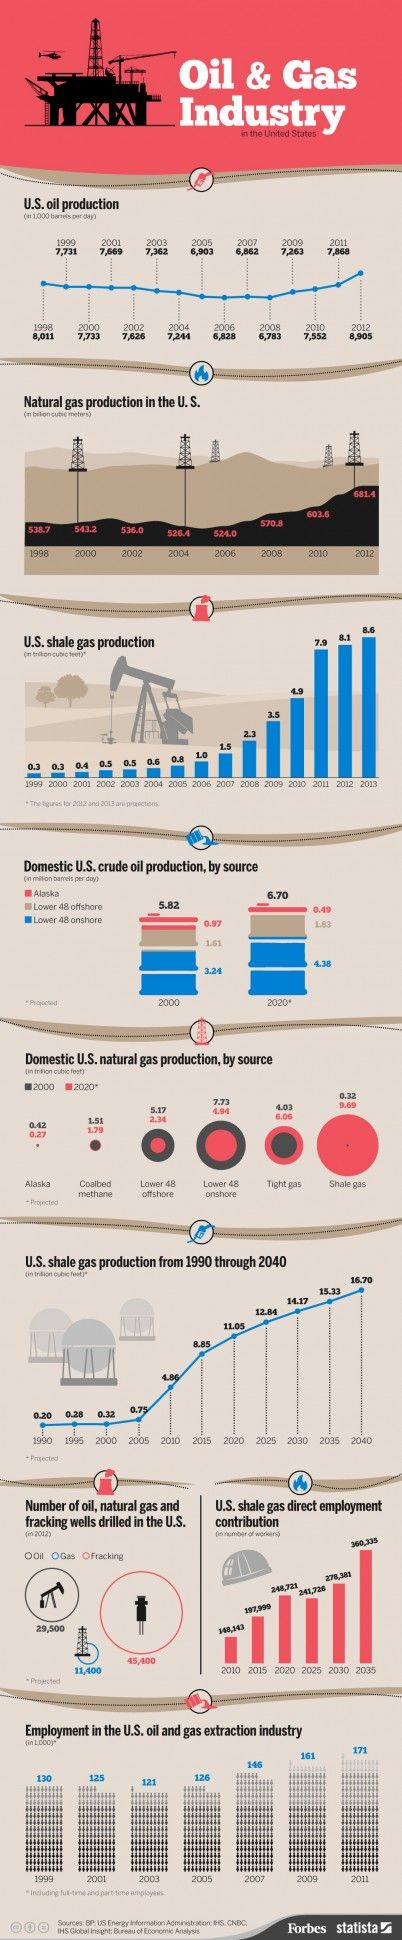 The U.S. #oil & #gas industry by the numbers. #infographic